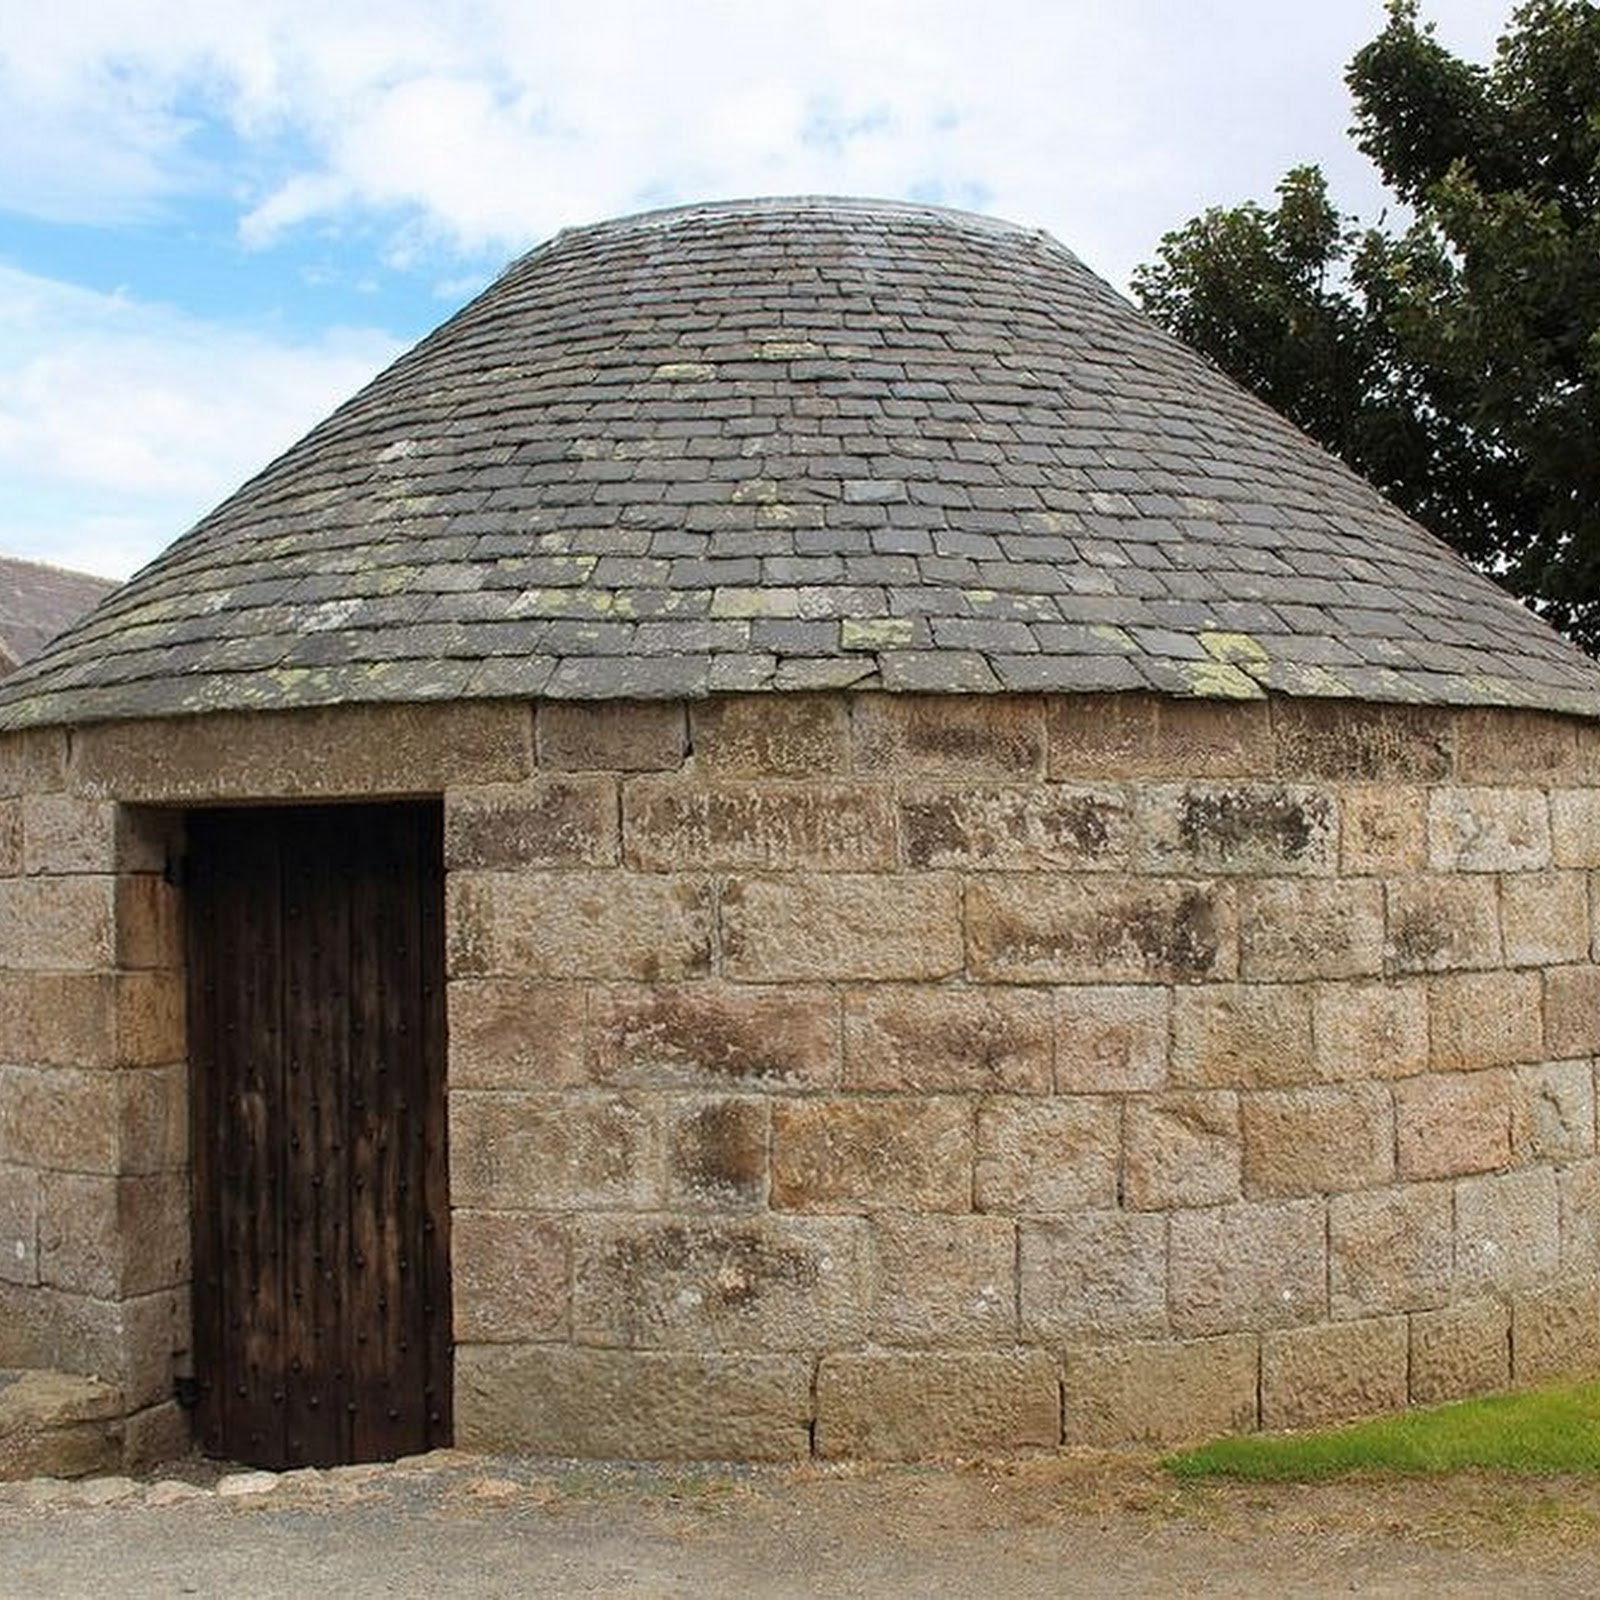 The Udny Mort House